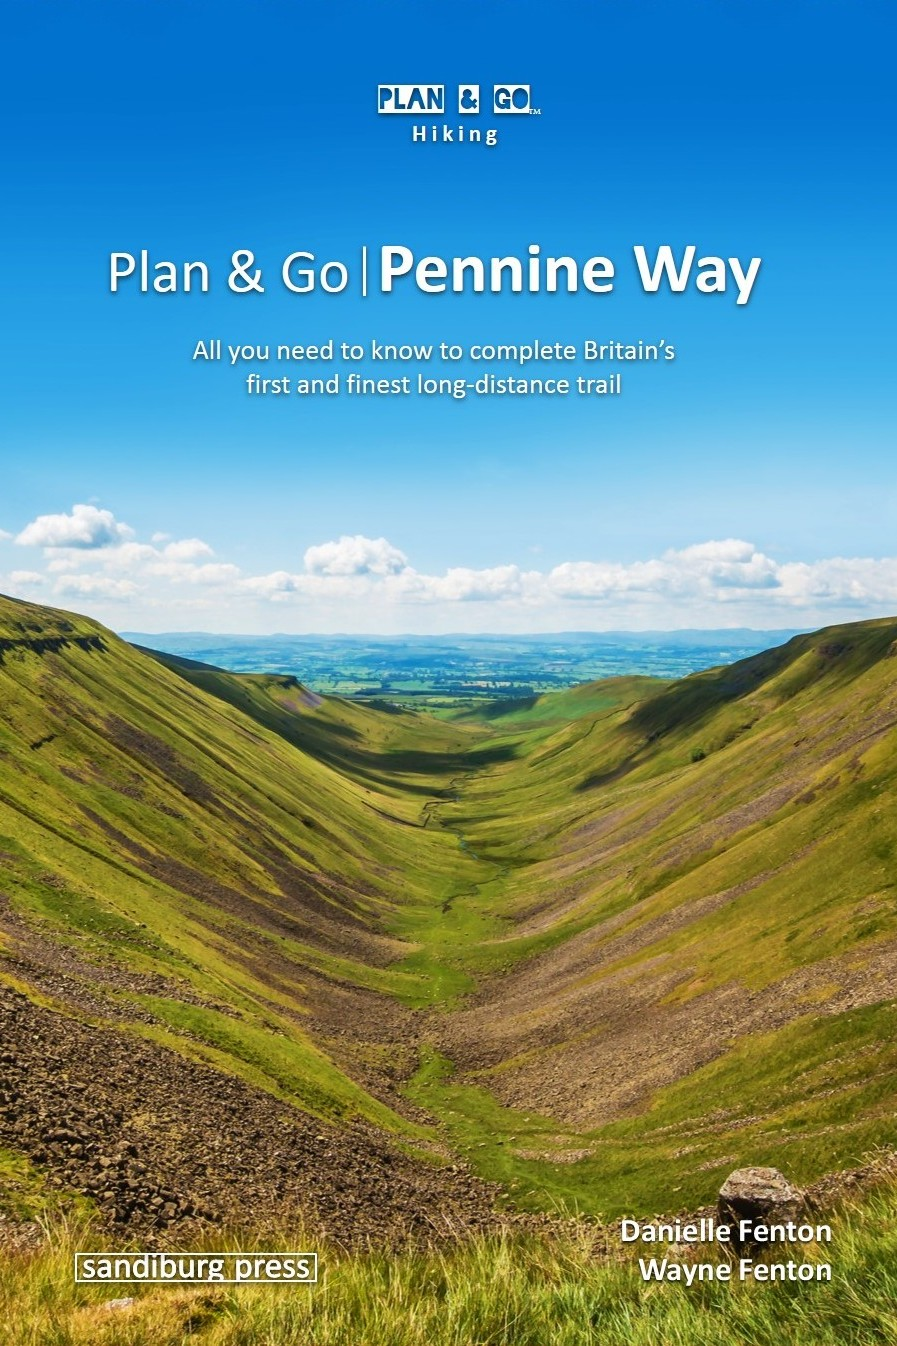 Plan & Go | Pennine Way